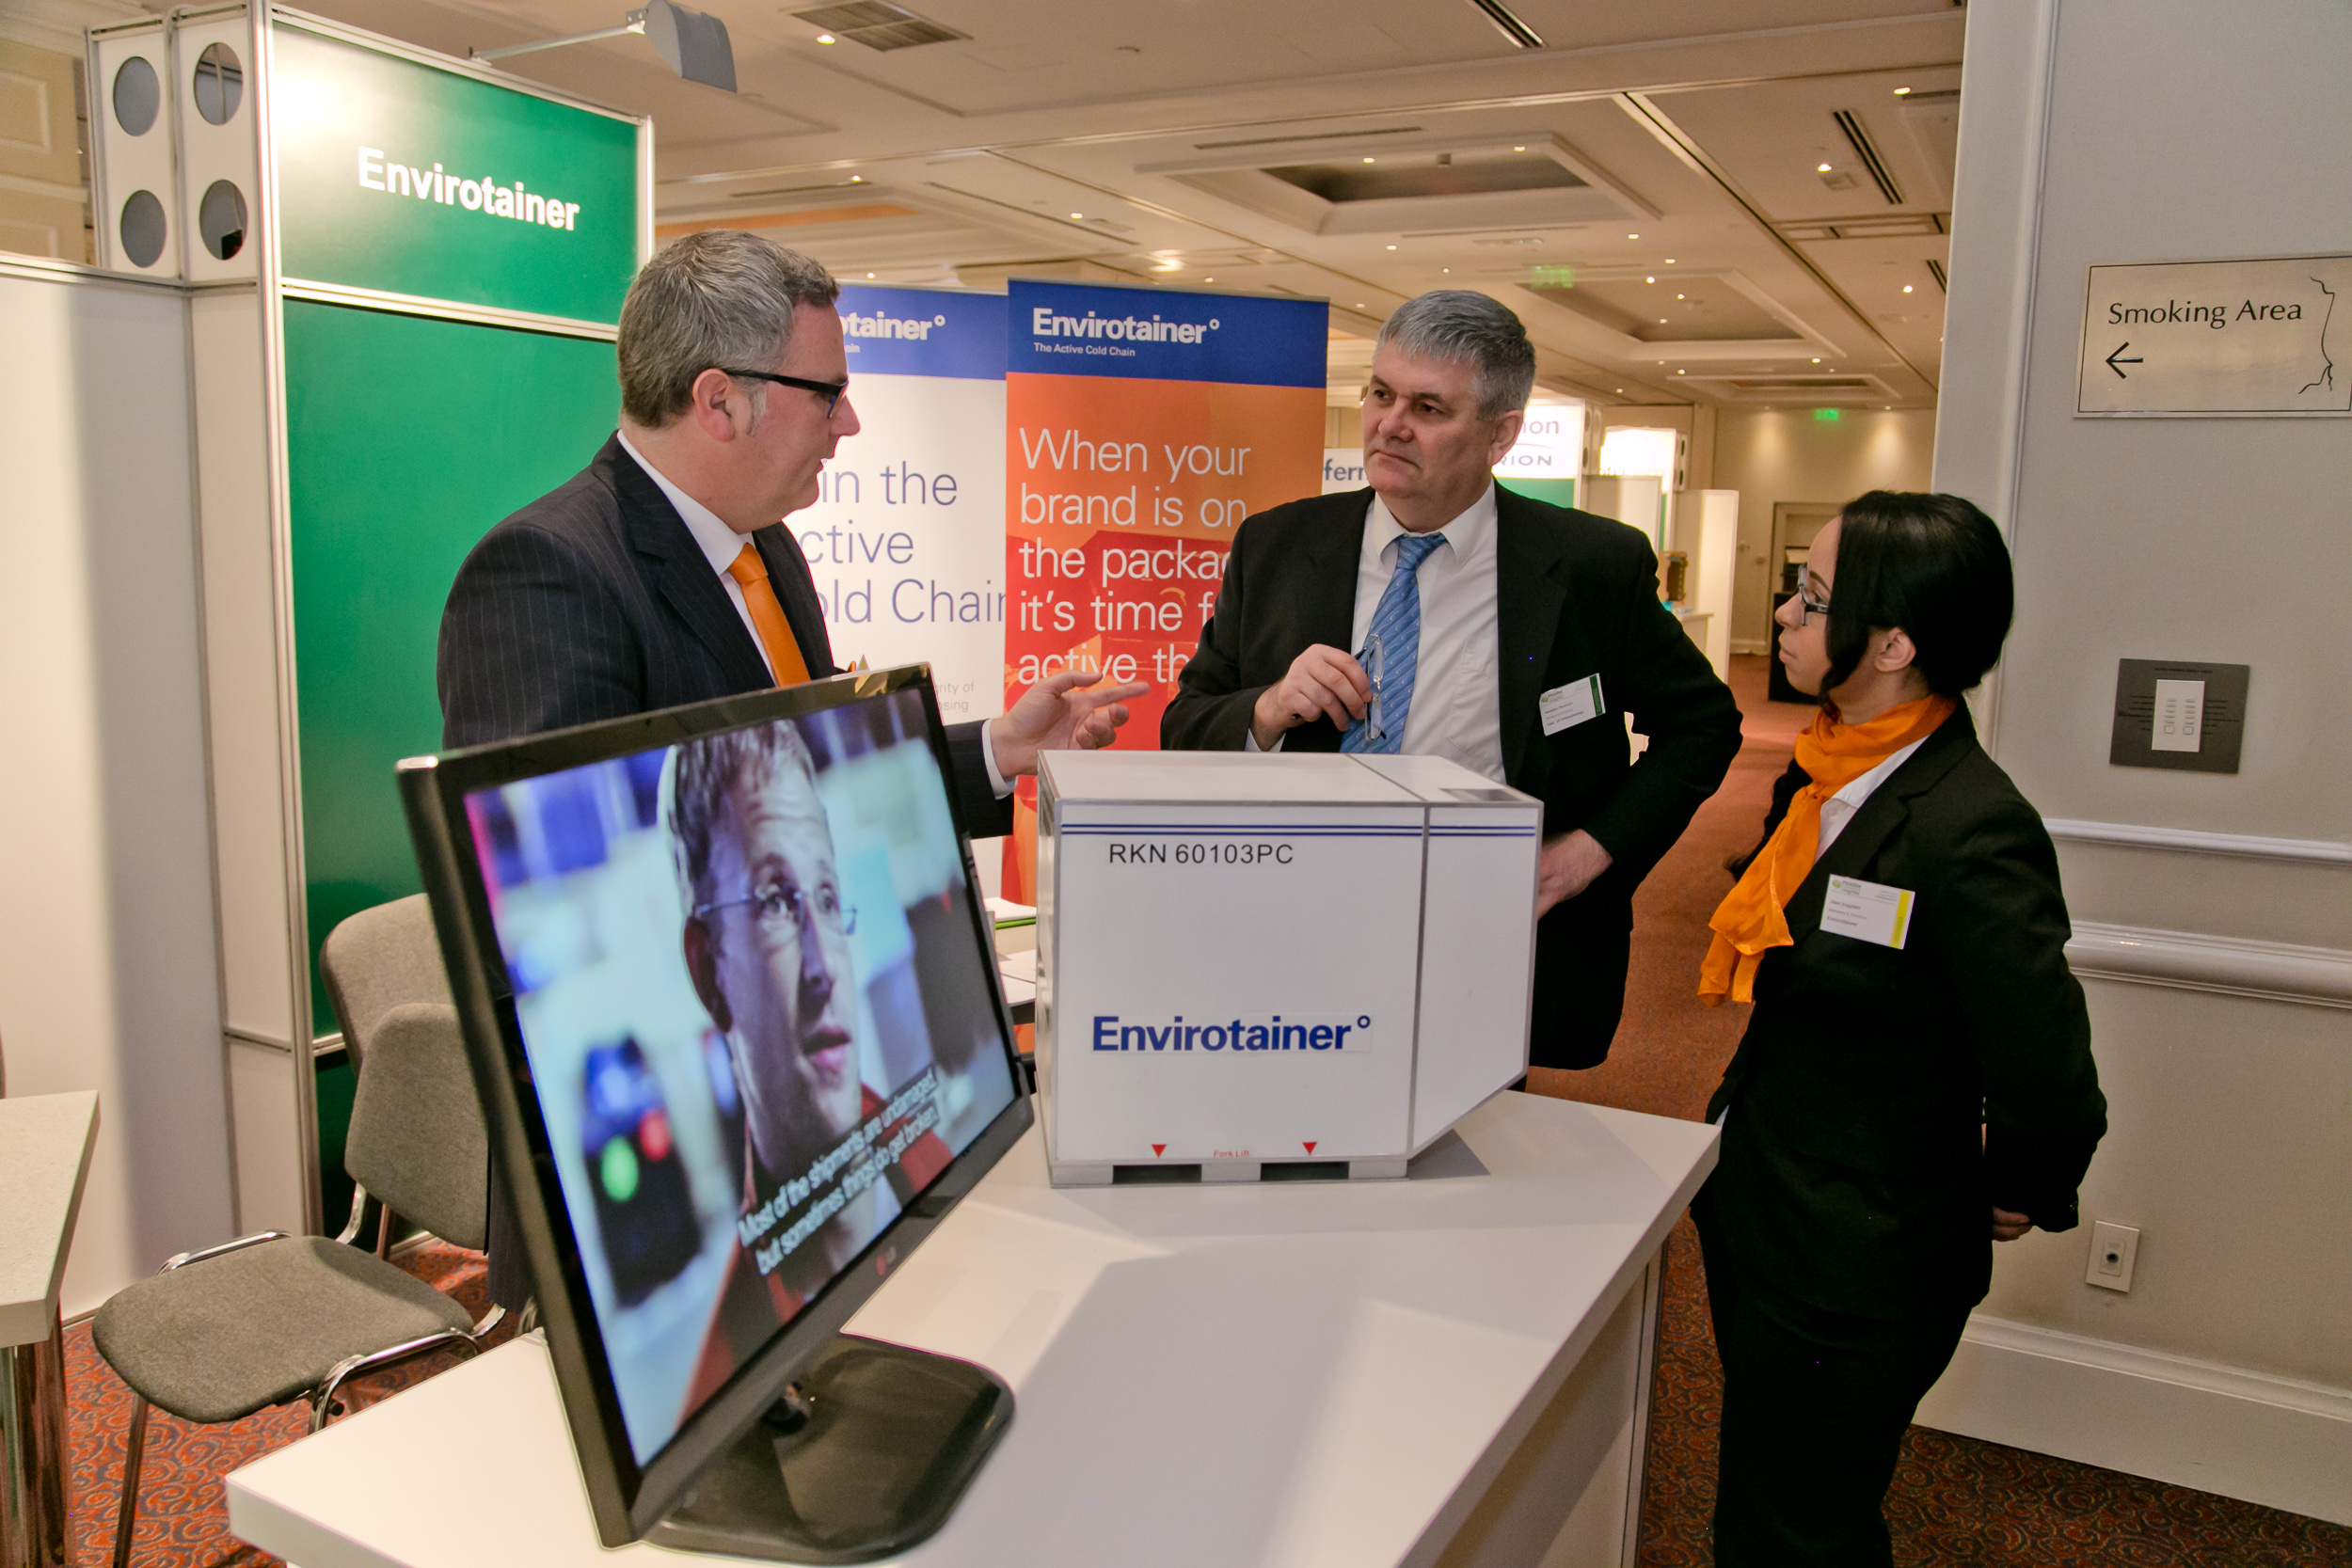 One-to-one meeting with Envirotainer at PHARM Connect 2015